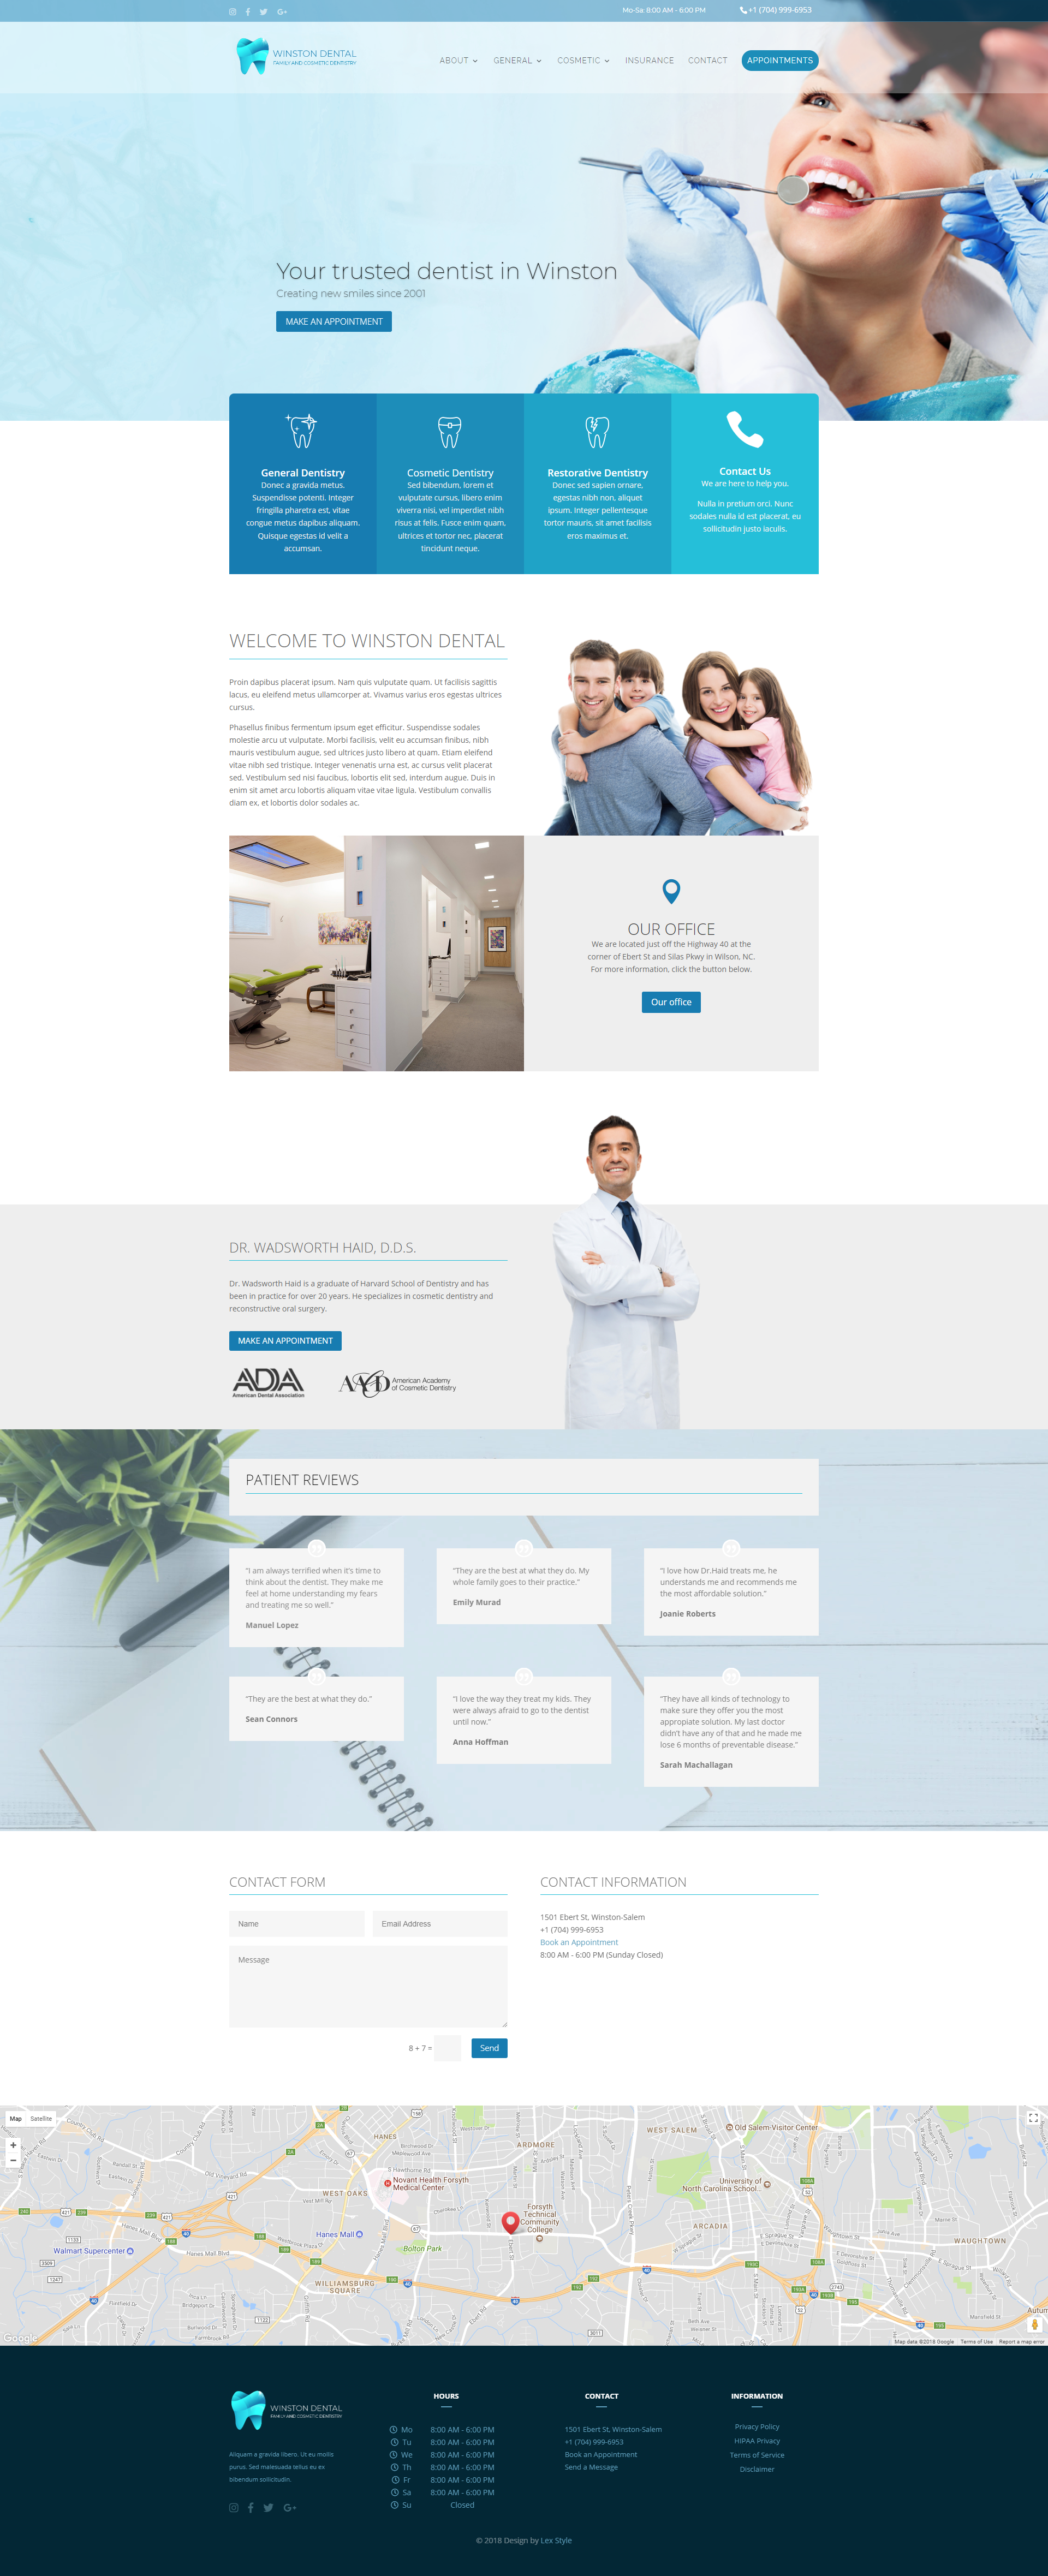 A Beautiful Clean And Modern Healthcare Web Design Dentalwebdesign Healthcarewebdesign Webdesign We Clean Web Design Healthcare Design Healthcare Website